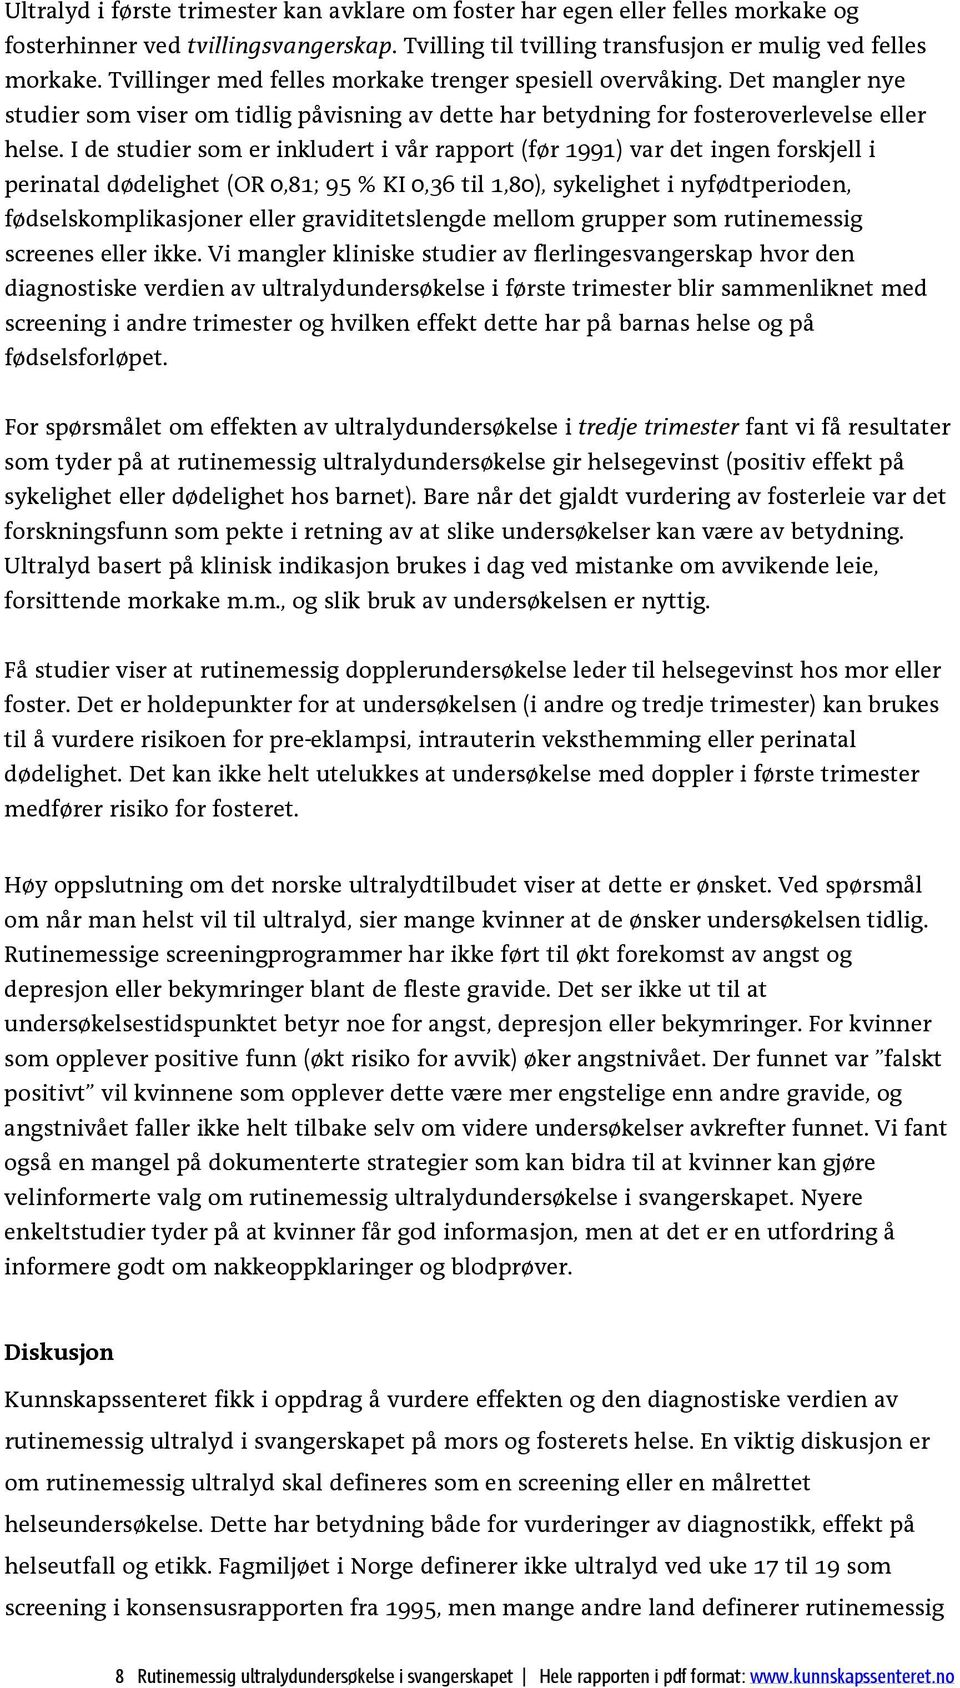 Dating program for unge menn kongsberg sex i svangerskapet big dick.